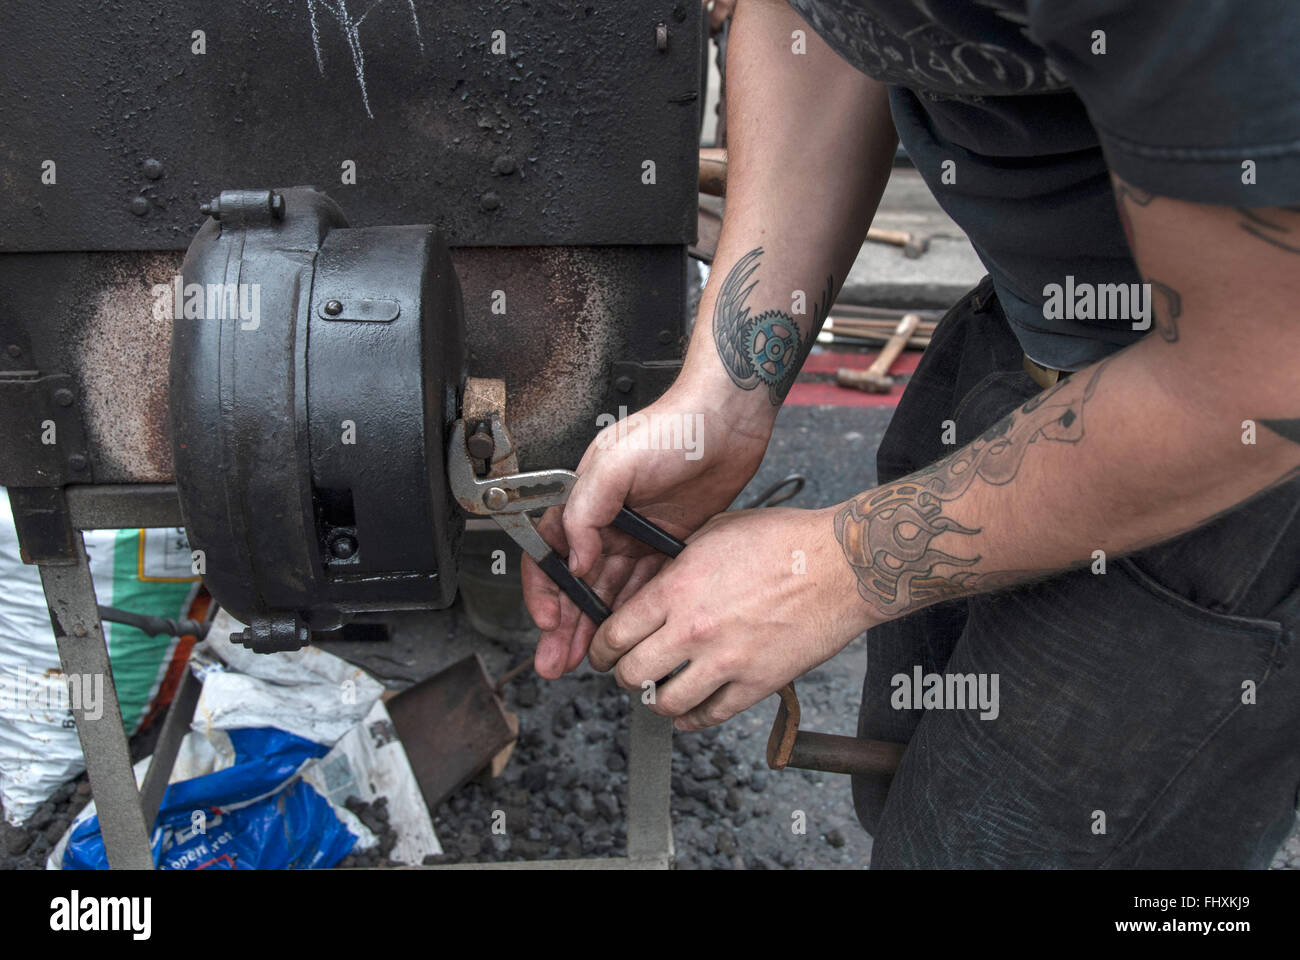 A male laborer tightens the screw on a metal devices Stock Photo